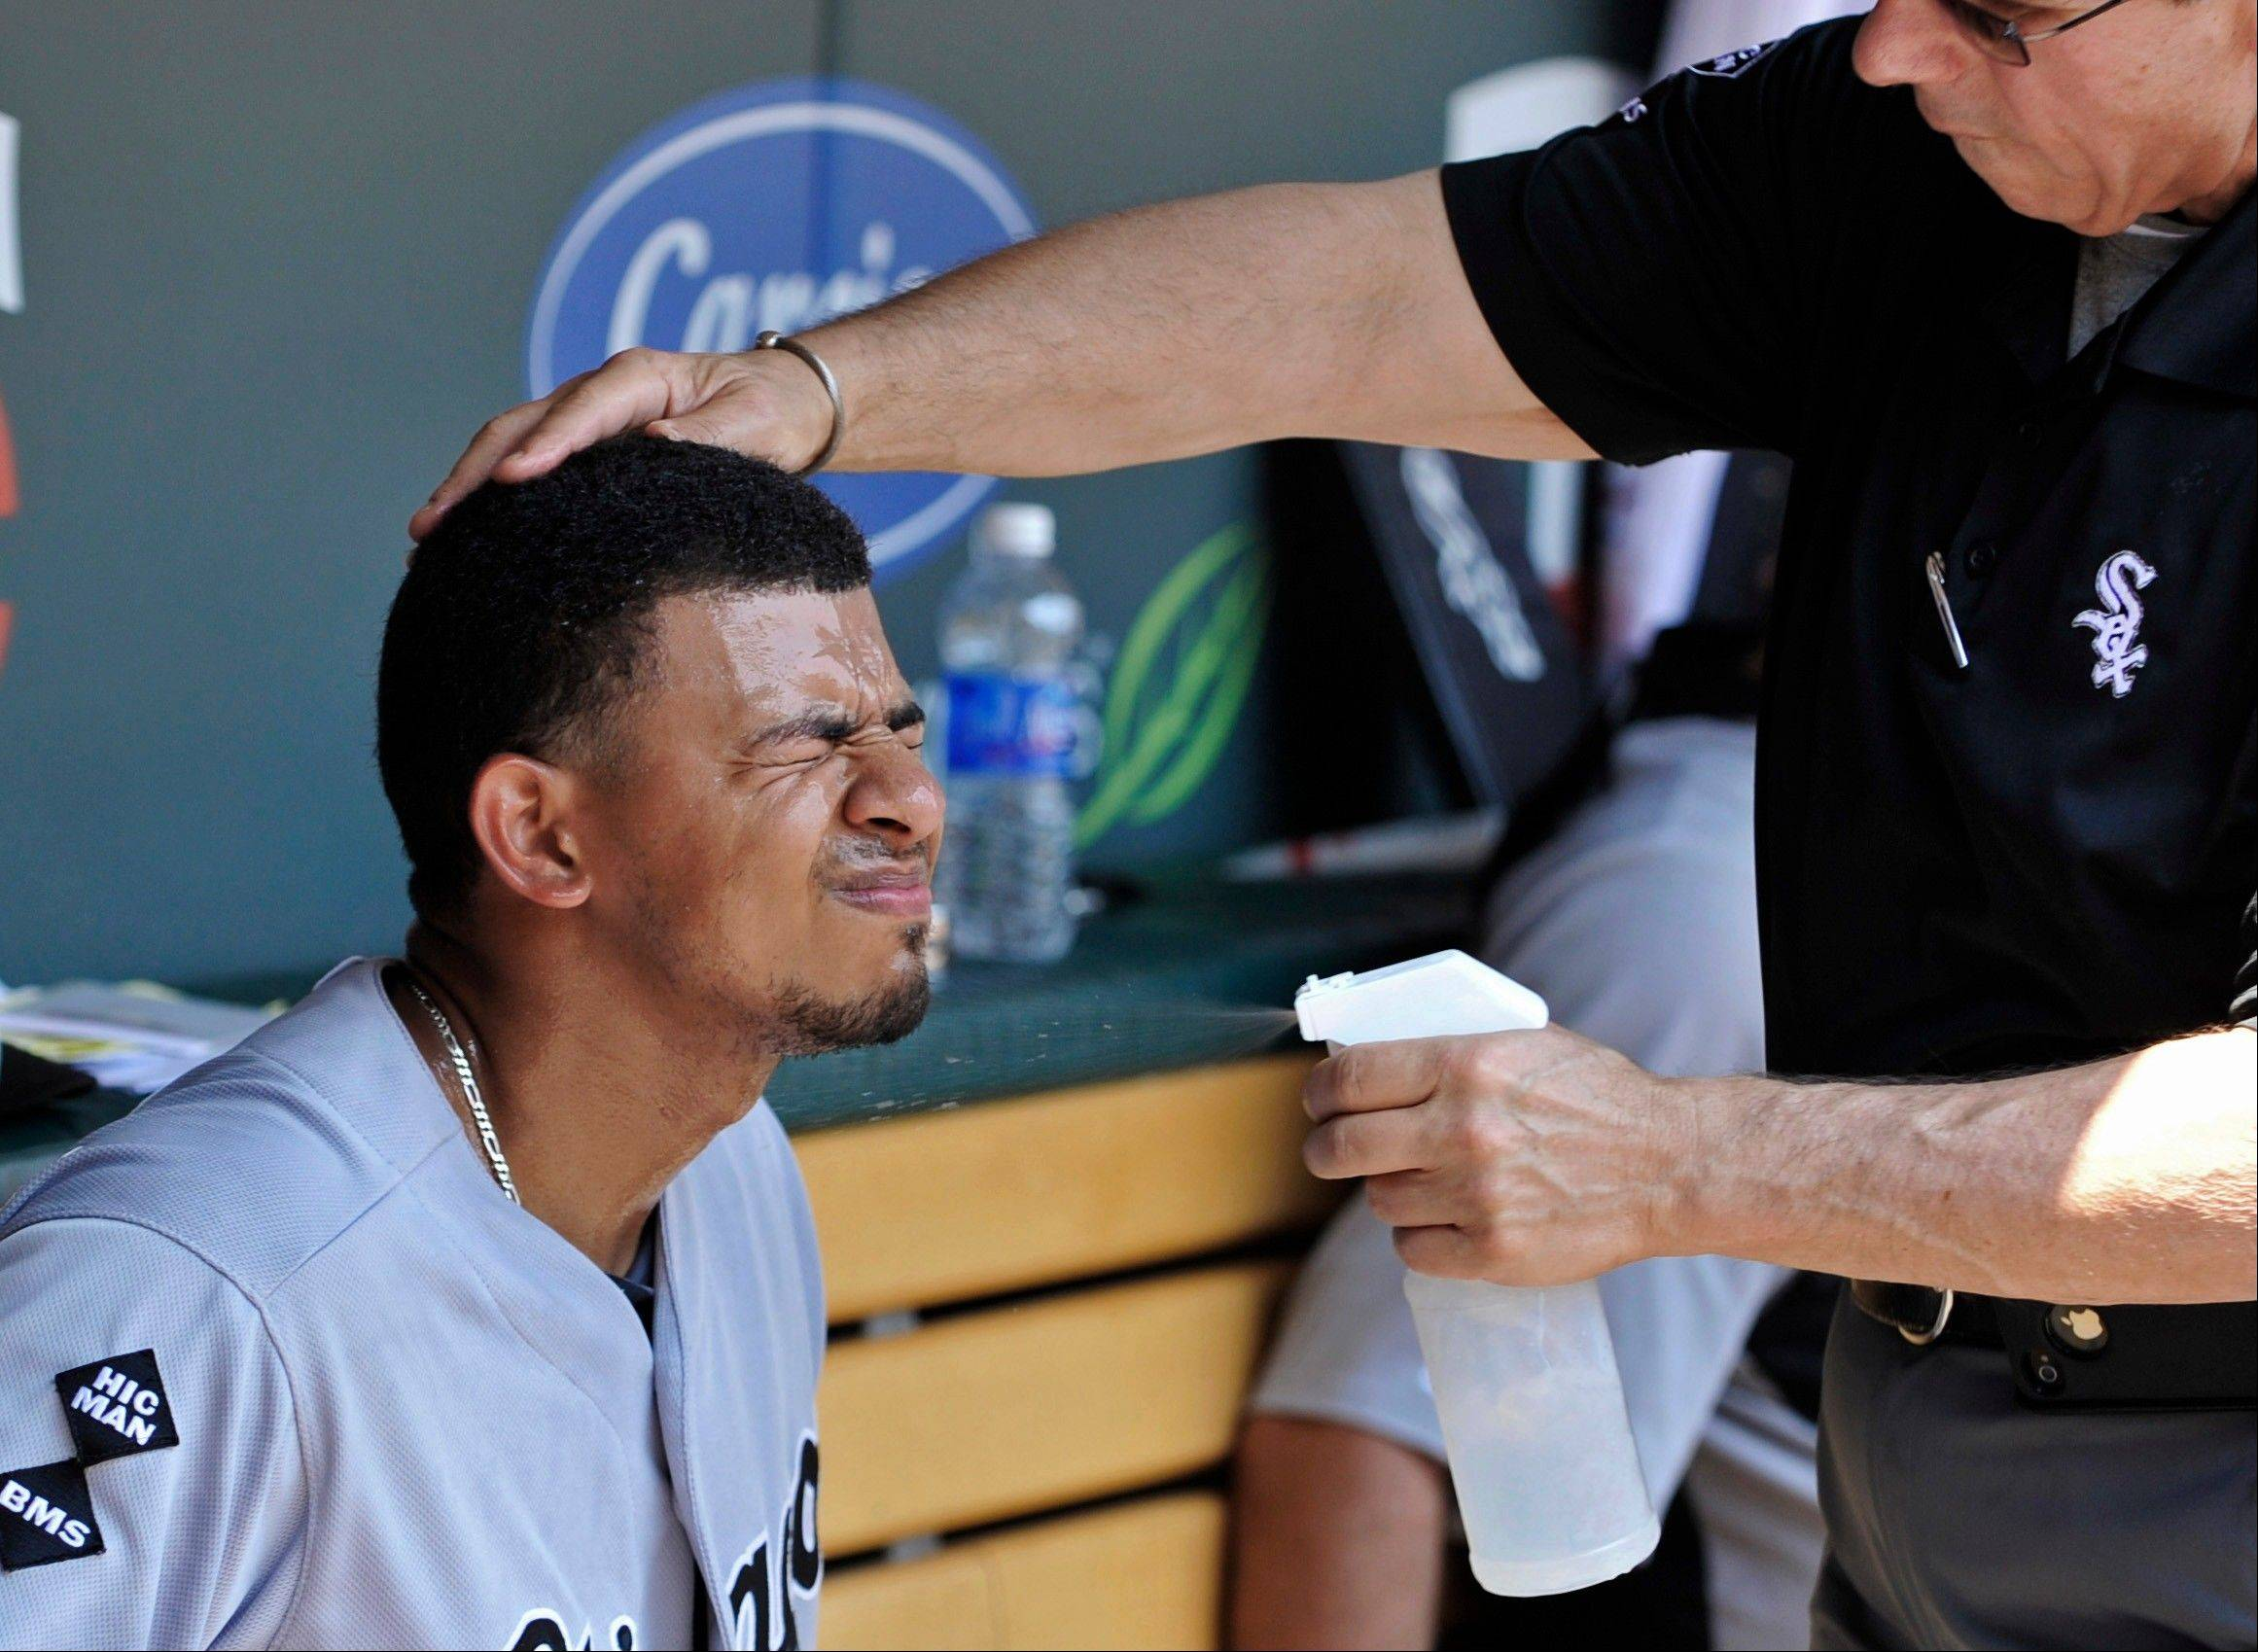 Eduardo Escobar closes his eyes as trainer Herm Schneider sprays him with cool water for relief from oppressive heat and high humidity during Wednesday's game in Minneapolis.